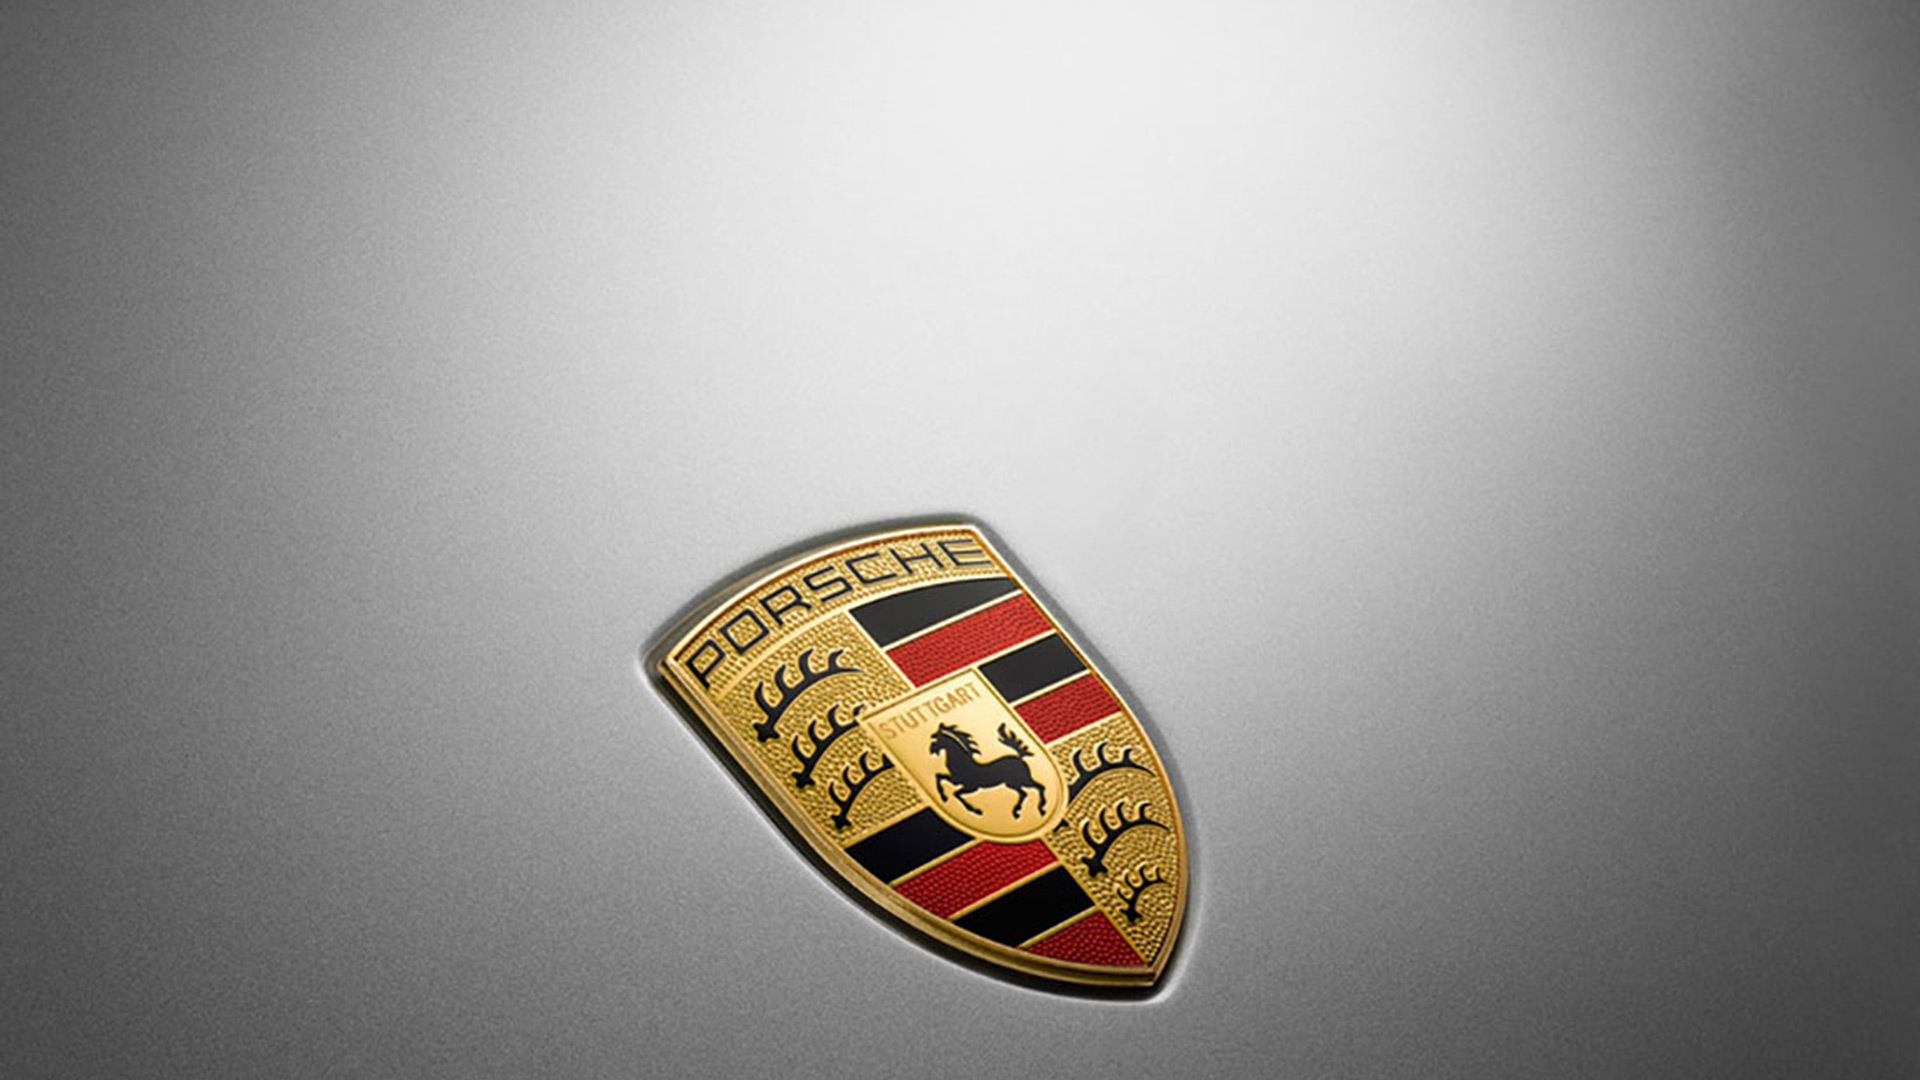 Porsche fined for diesel emissions scandal